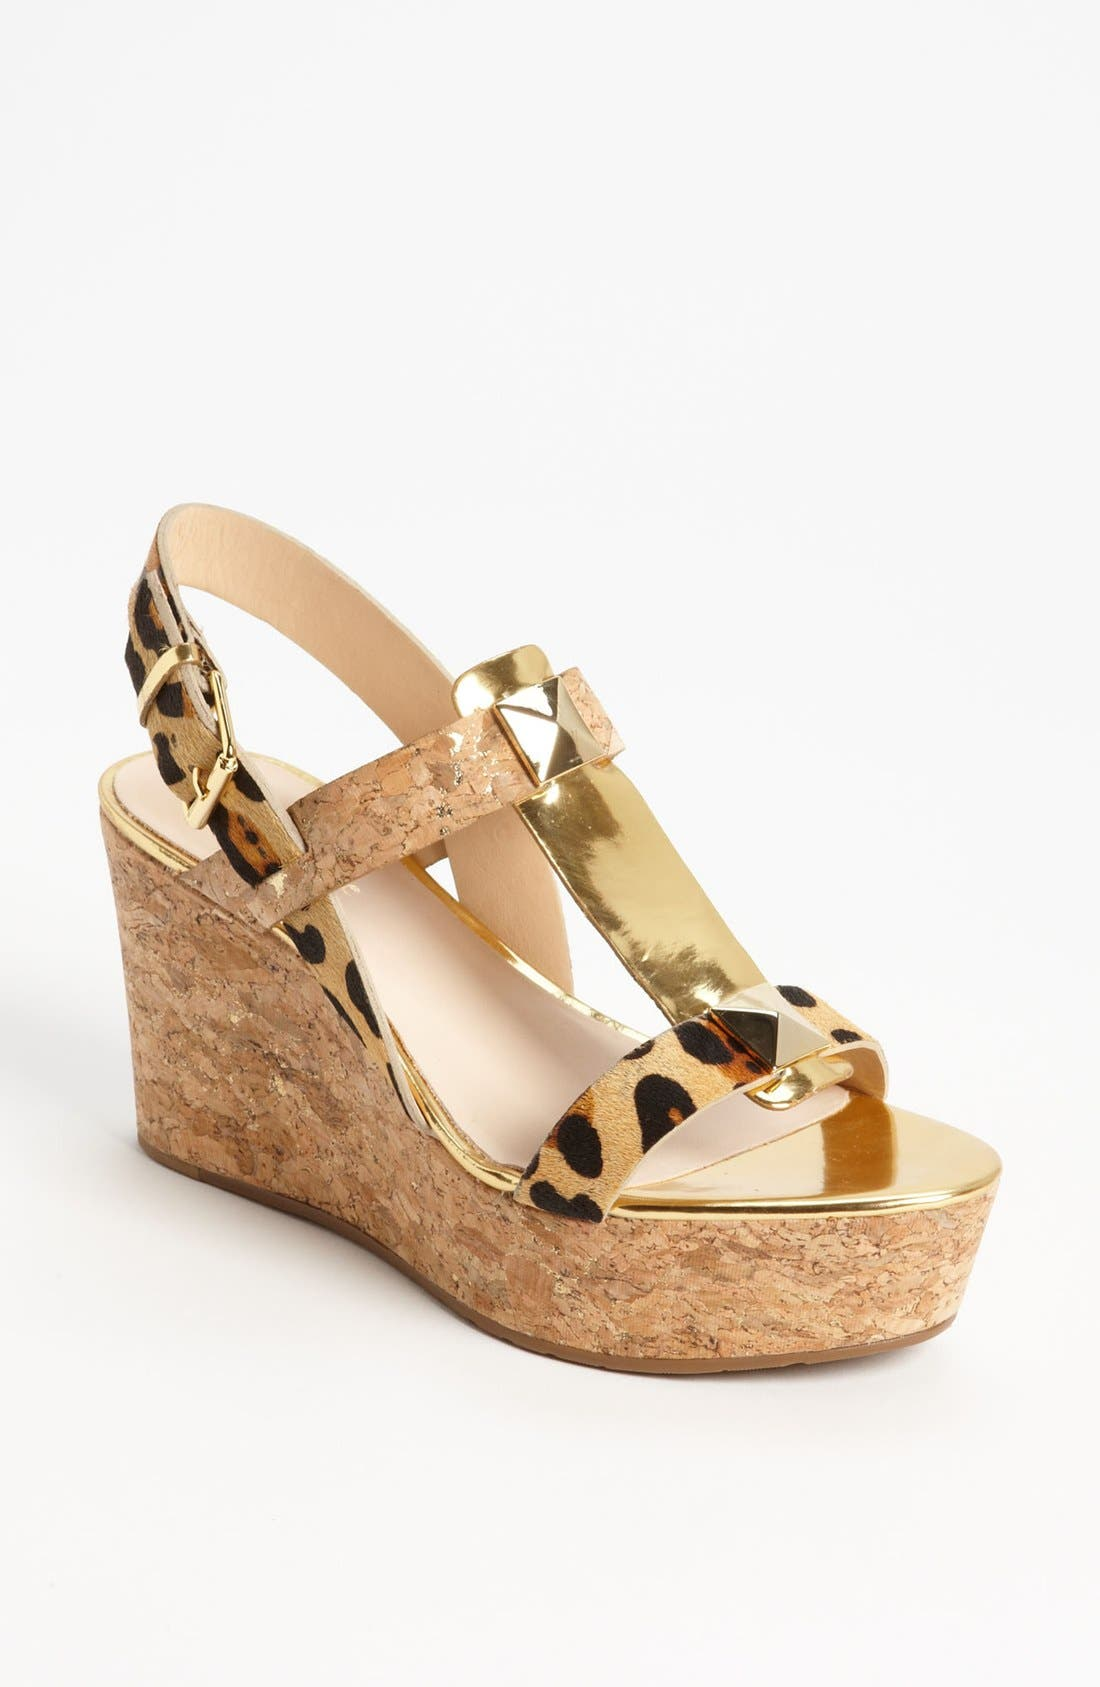 Alternate Image 1 Selected - kate spade new york 'tegan' sandal